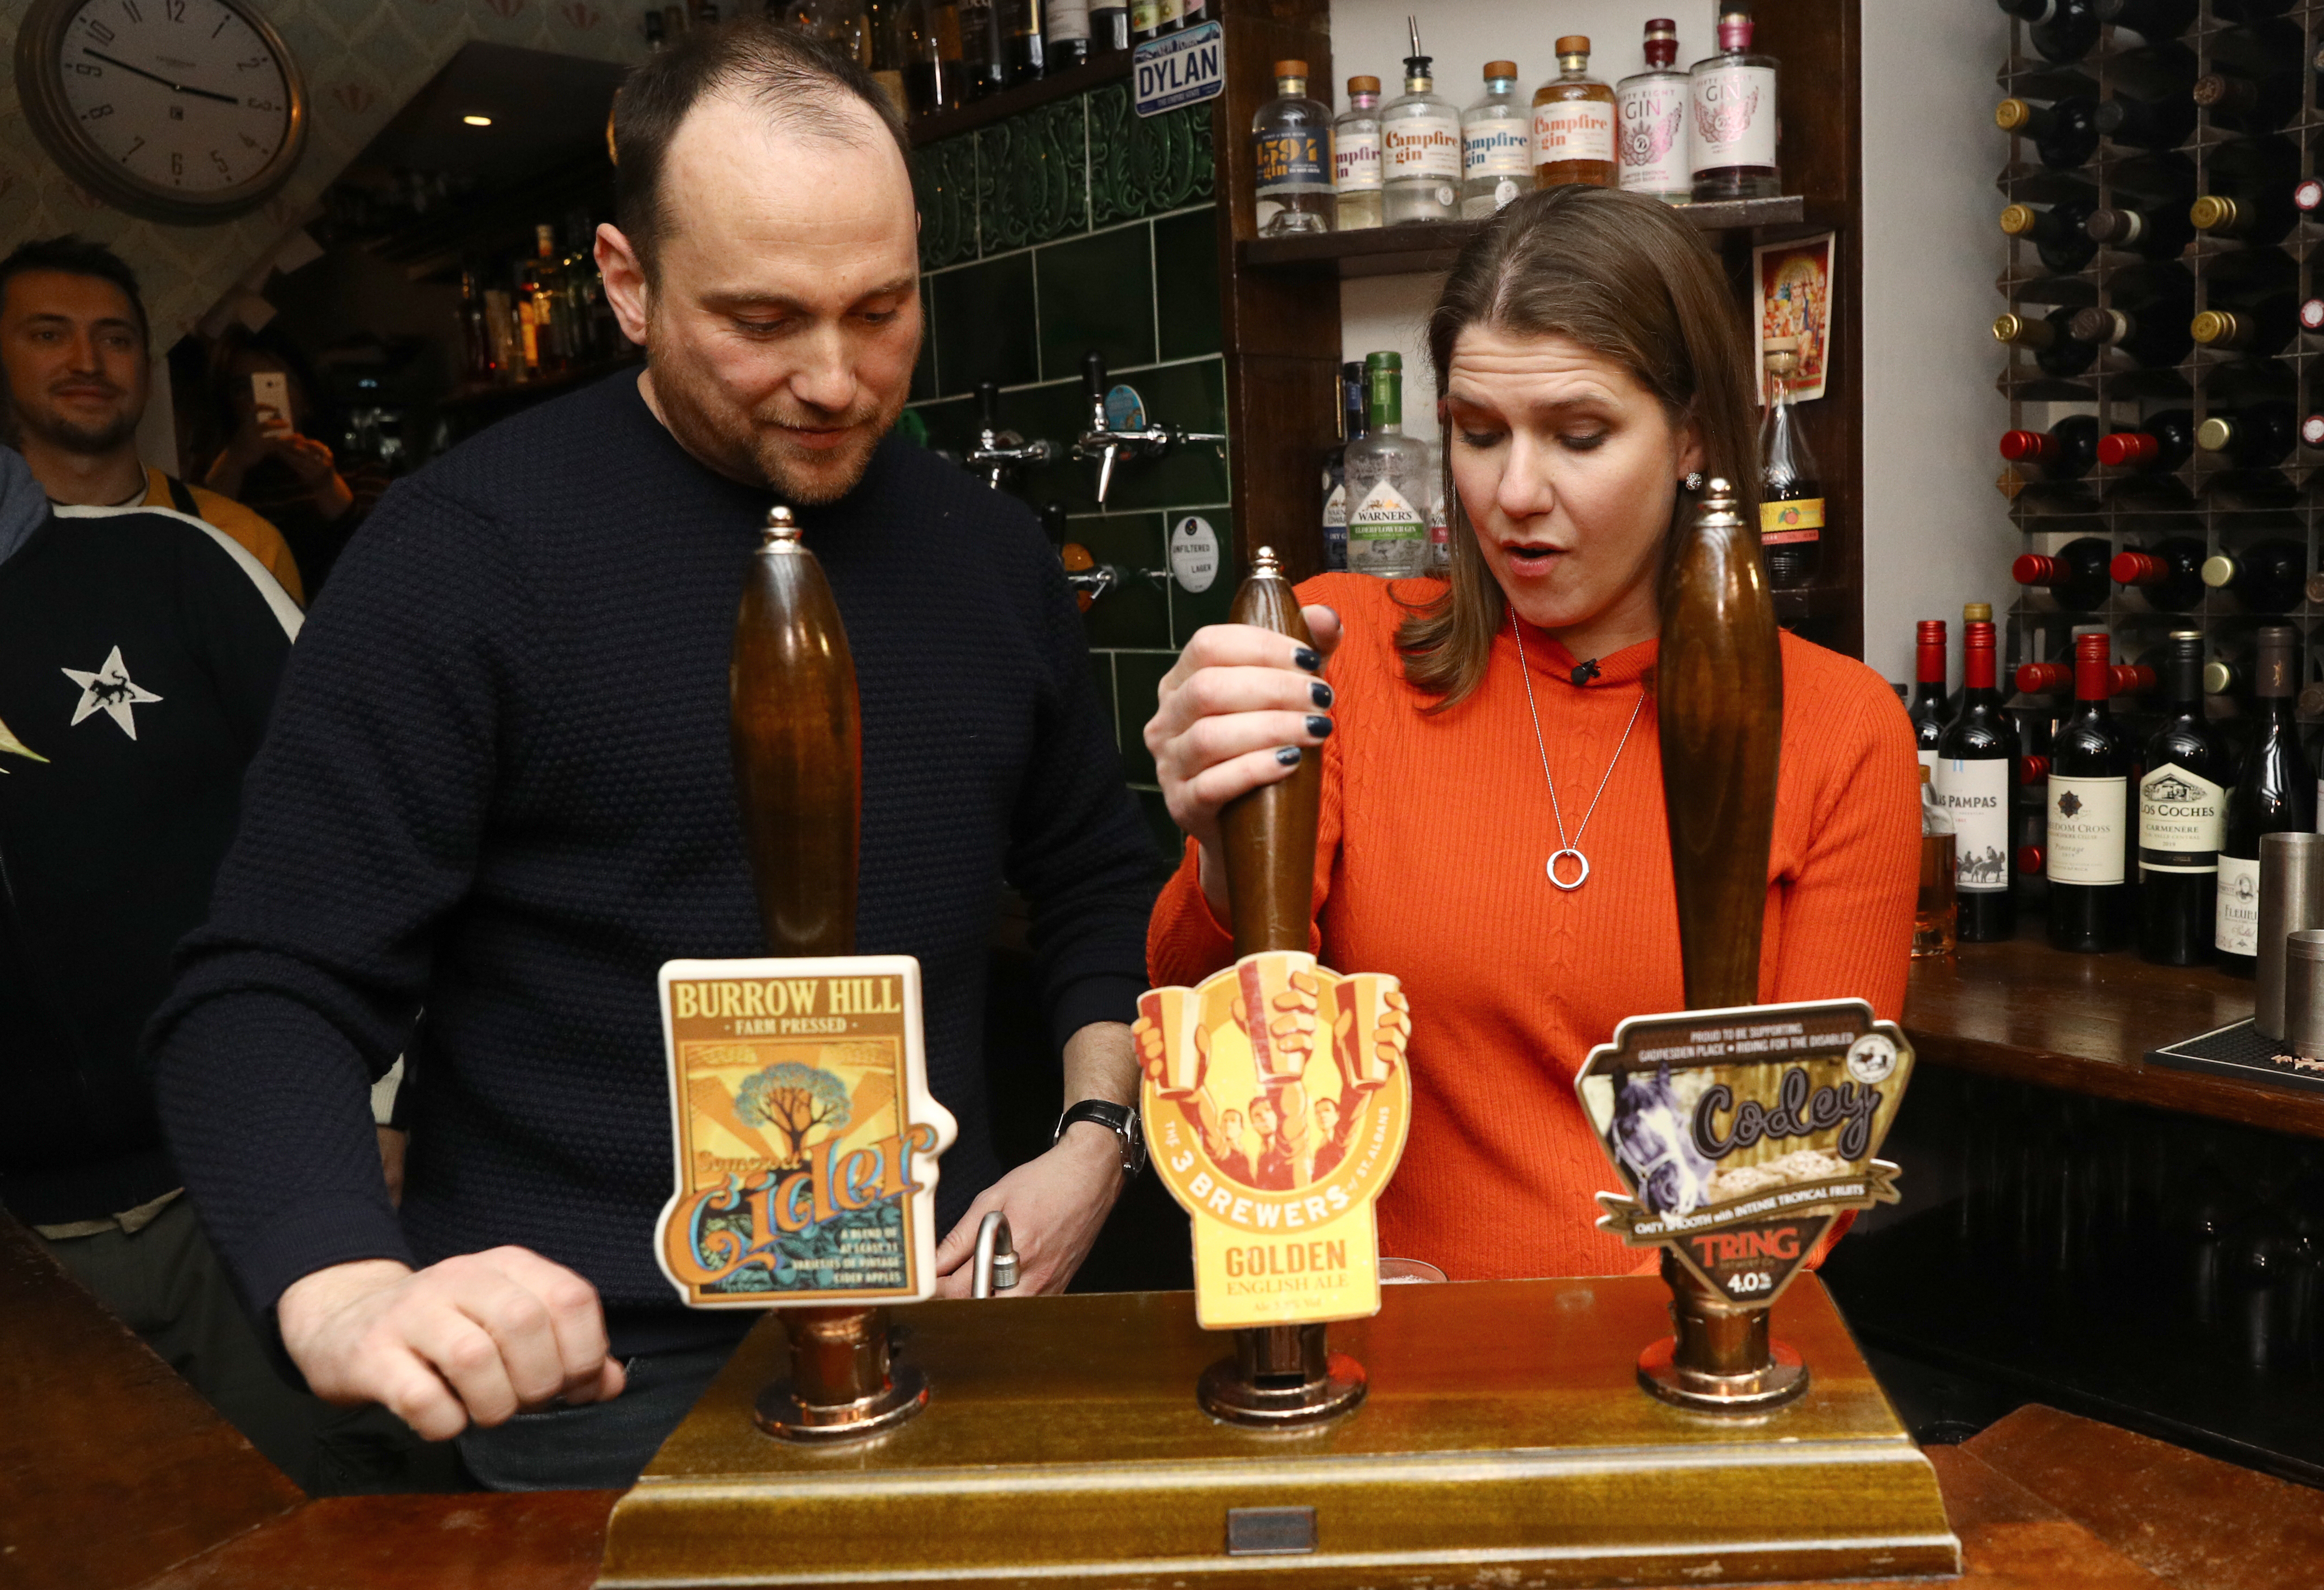 Liberal Democrat Leader Jo Swinson pulls a pint in Dylans - The Kings Arms on Small Business Saturday during her visit to St Albans, while on the General Election campaign trail.